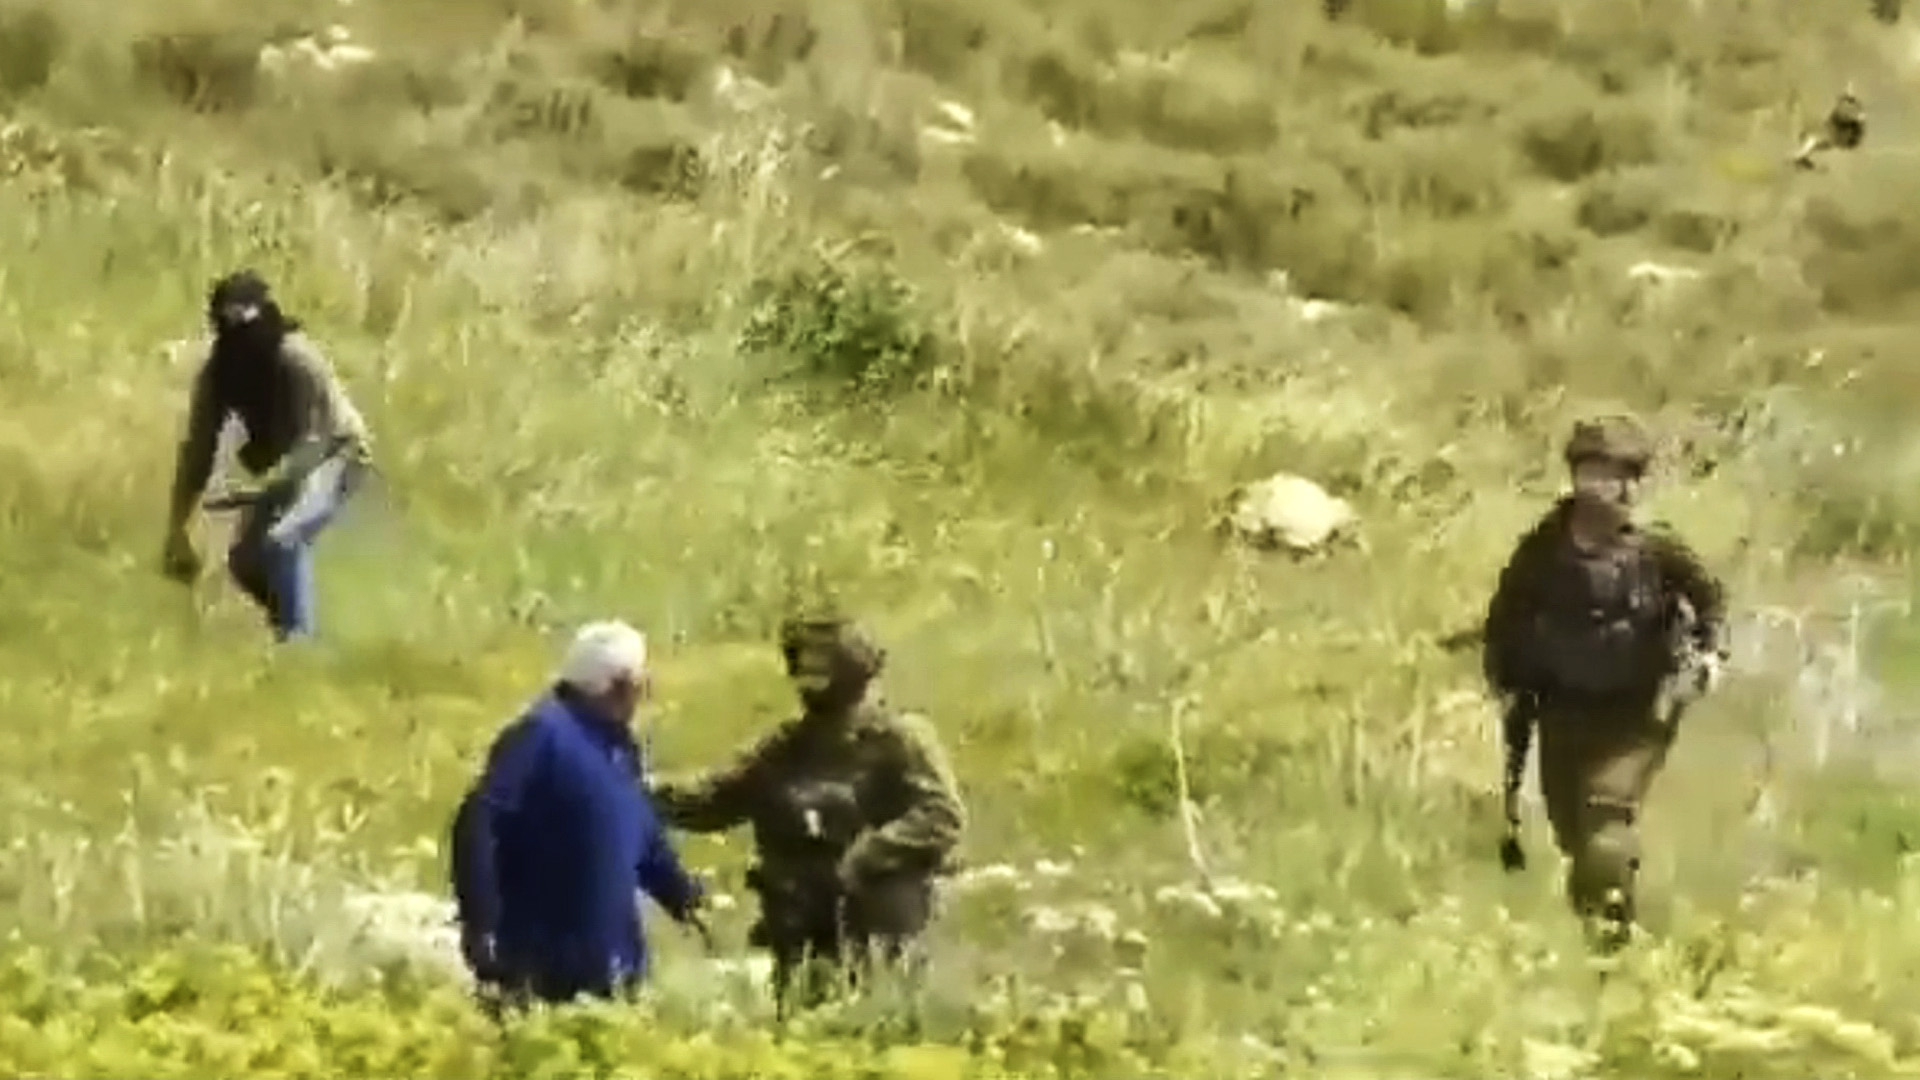 Israeli Settlers Attack Palestinian Man With Sticks And Stones In West Bank